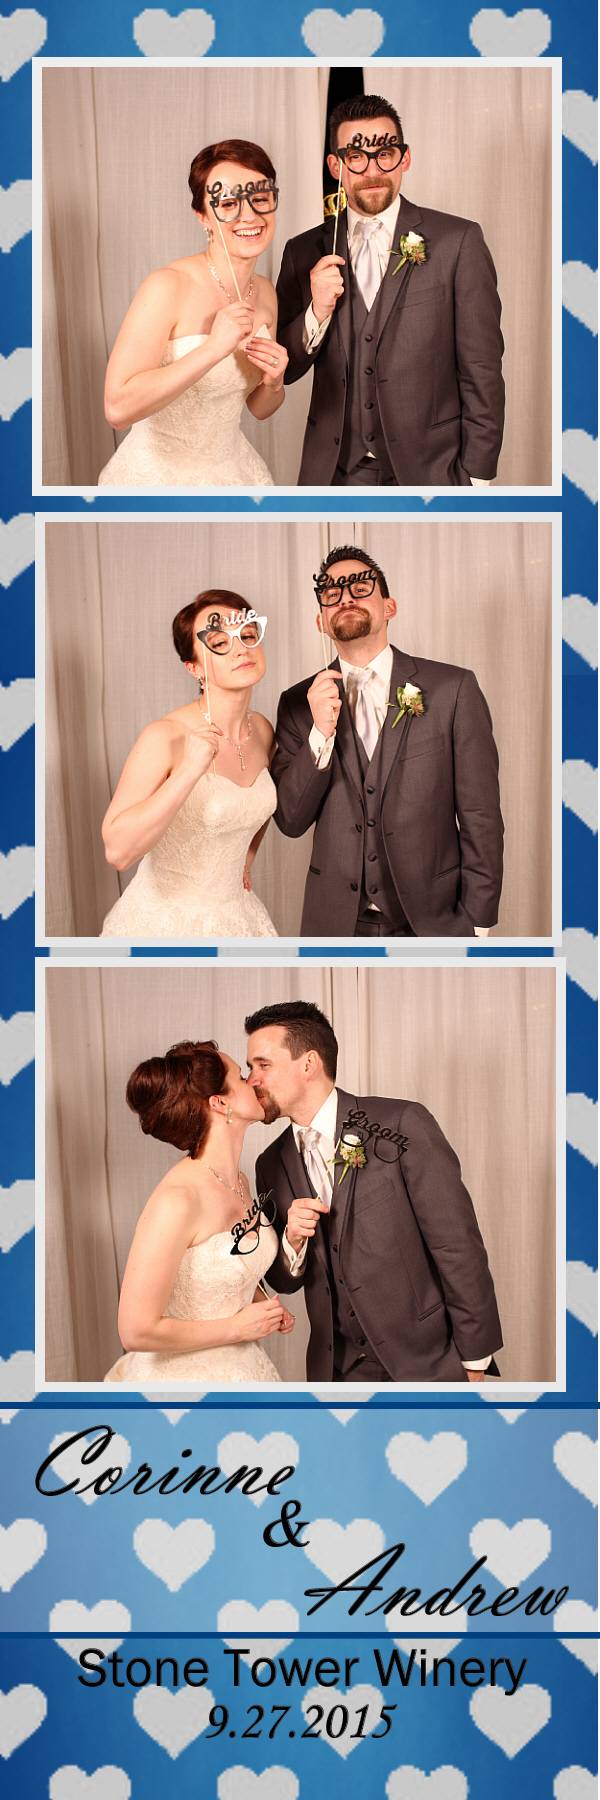 Guest House Events Photo Booth C&A (32).jpg